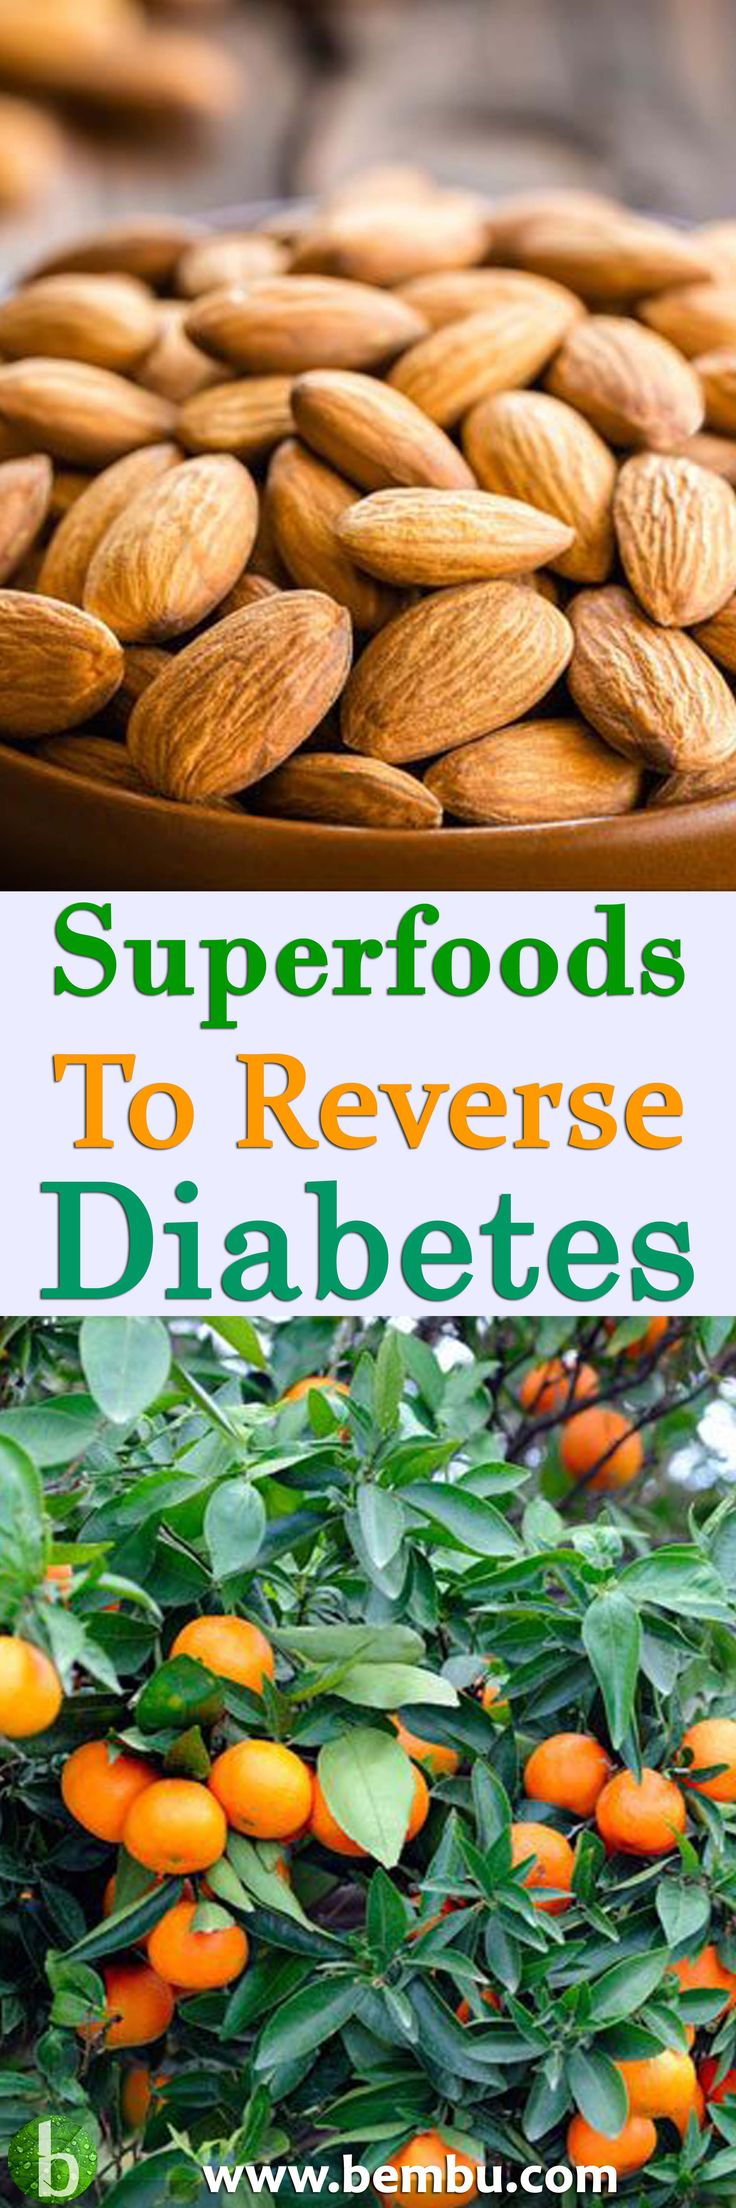 12 Superfoods to Reverse Diabetes